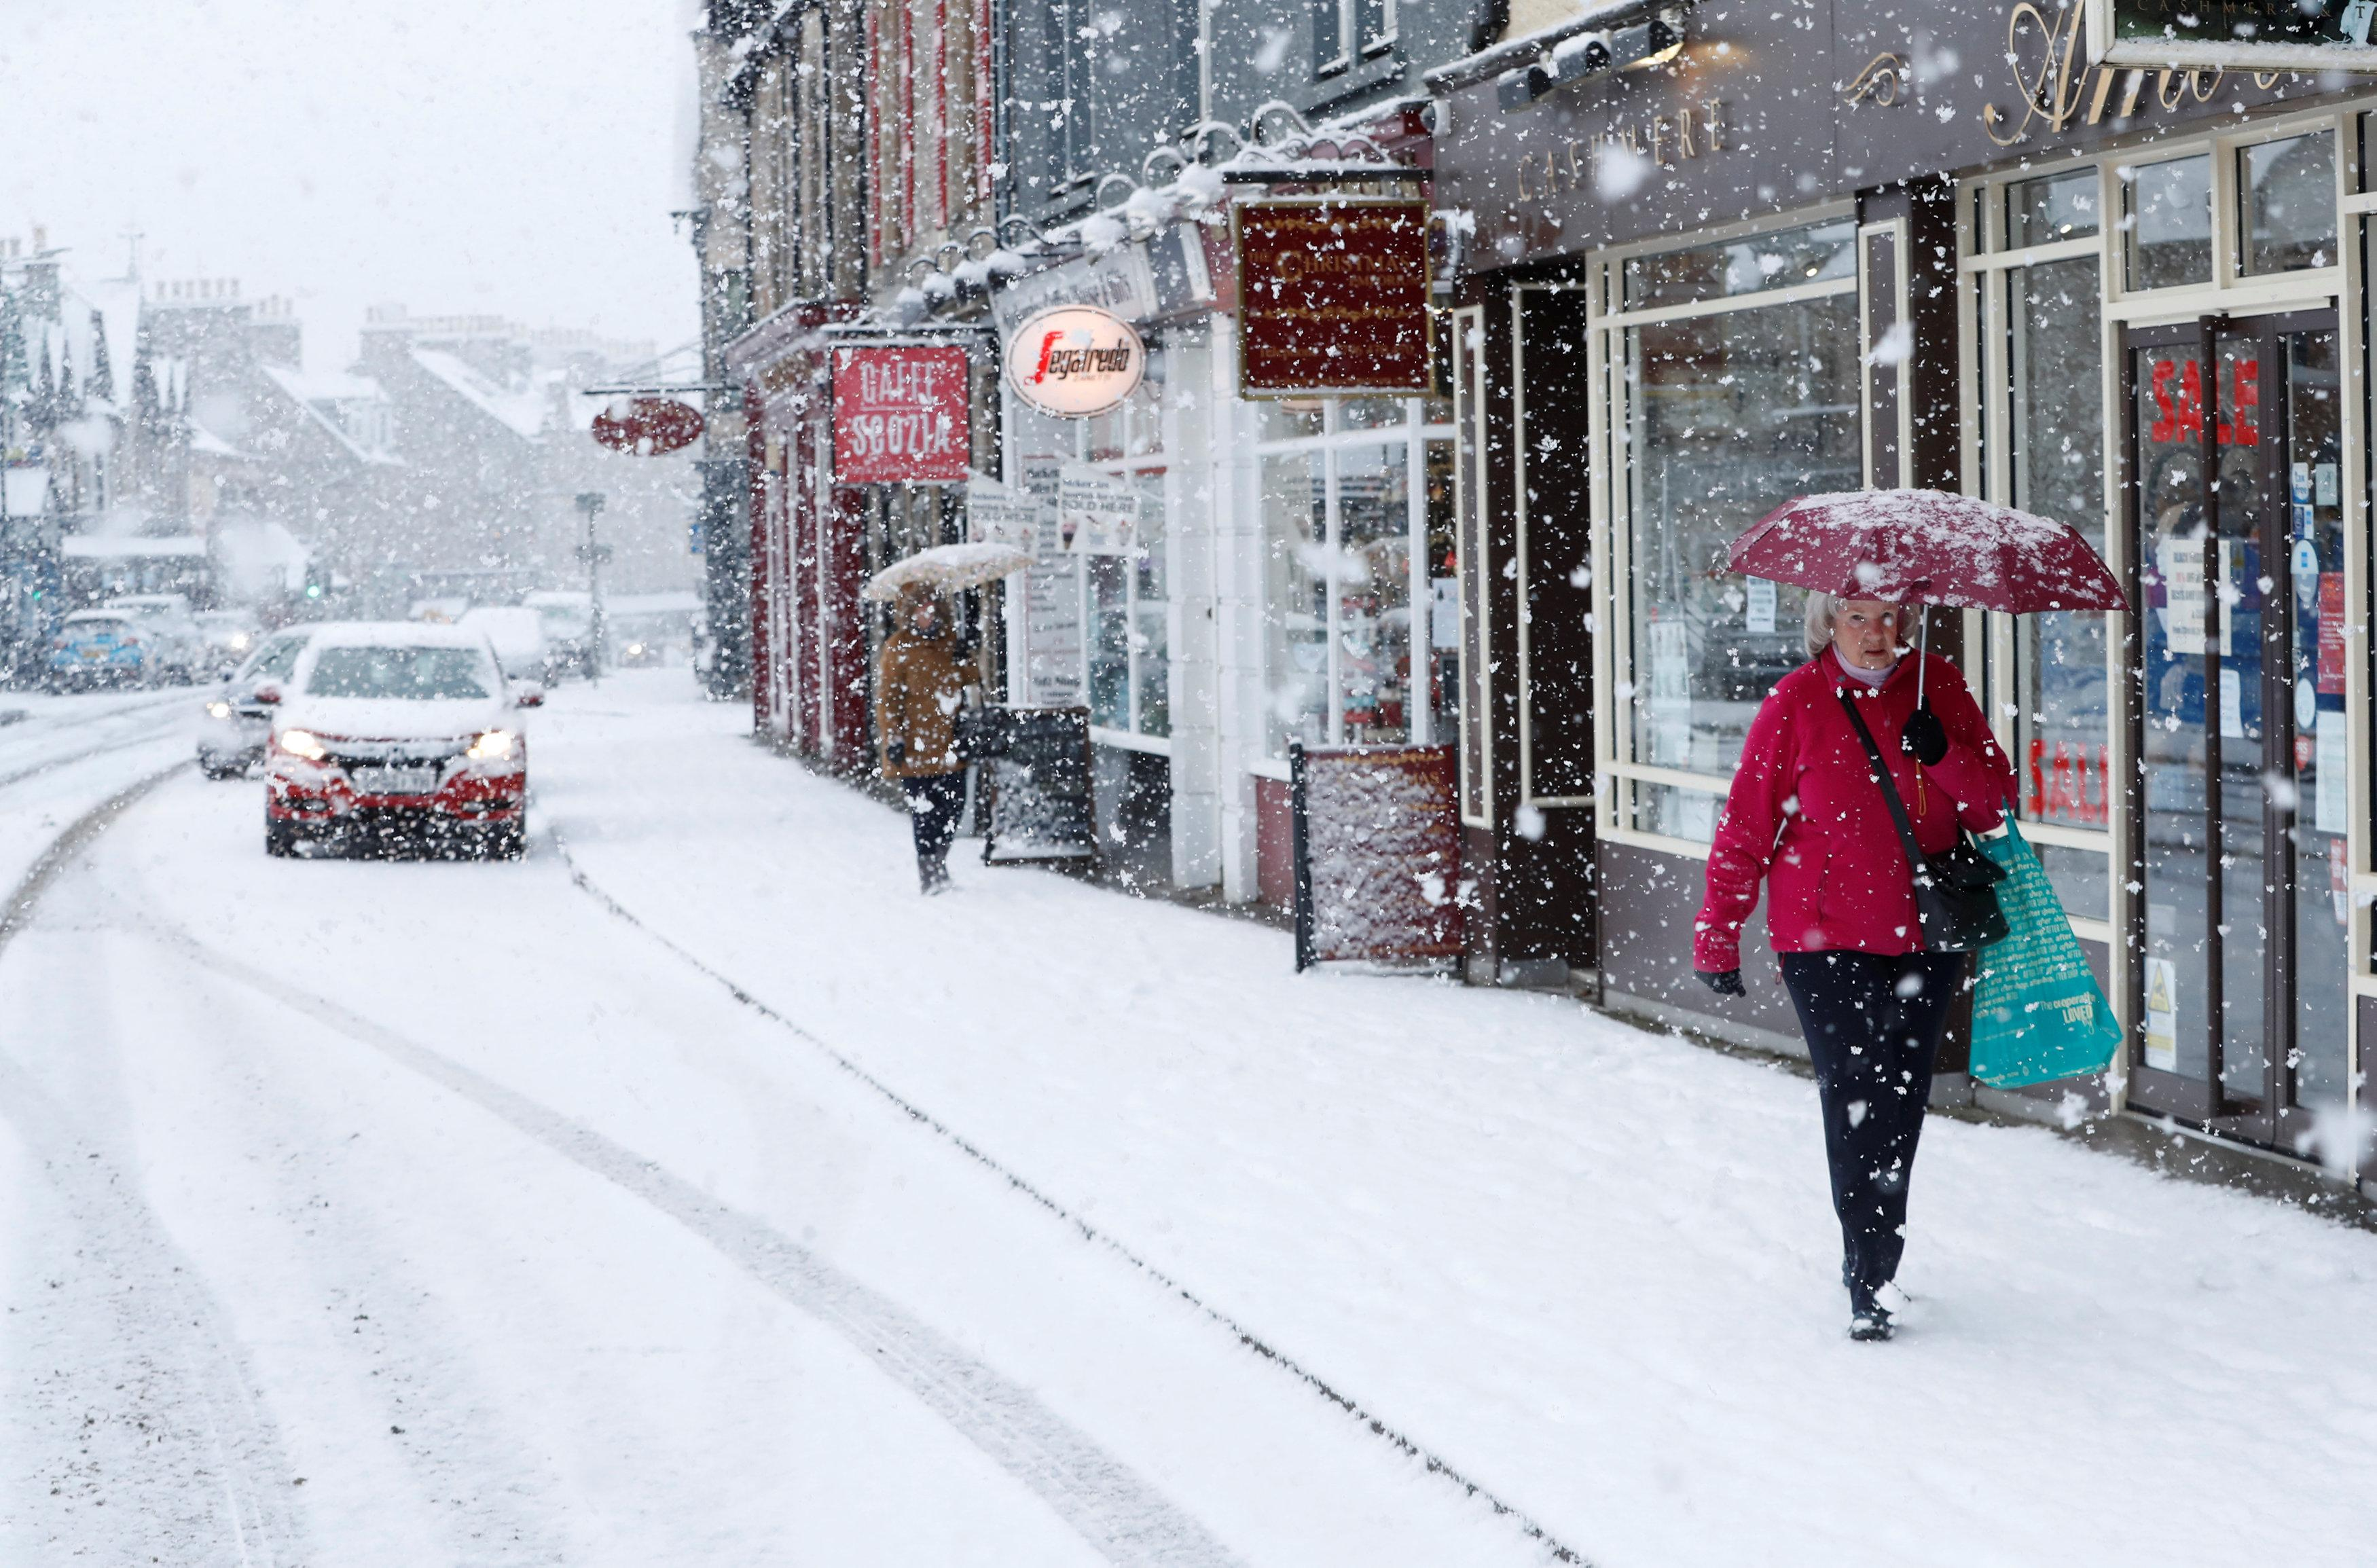 Pitlochry, Scotland, has already had snow this week [REUTERS/Russell Cheyne]